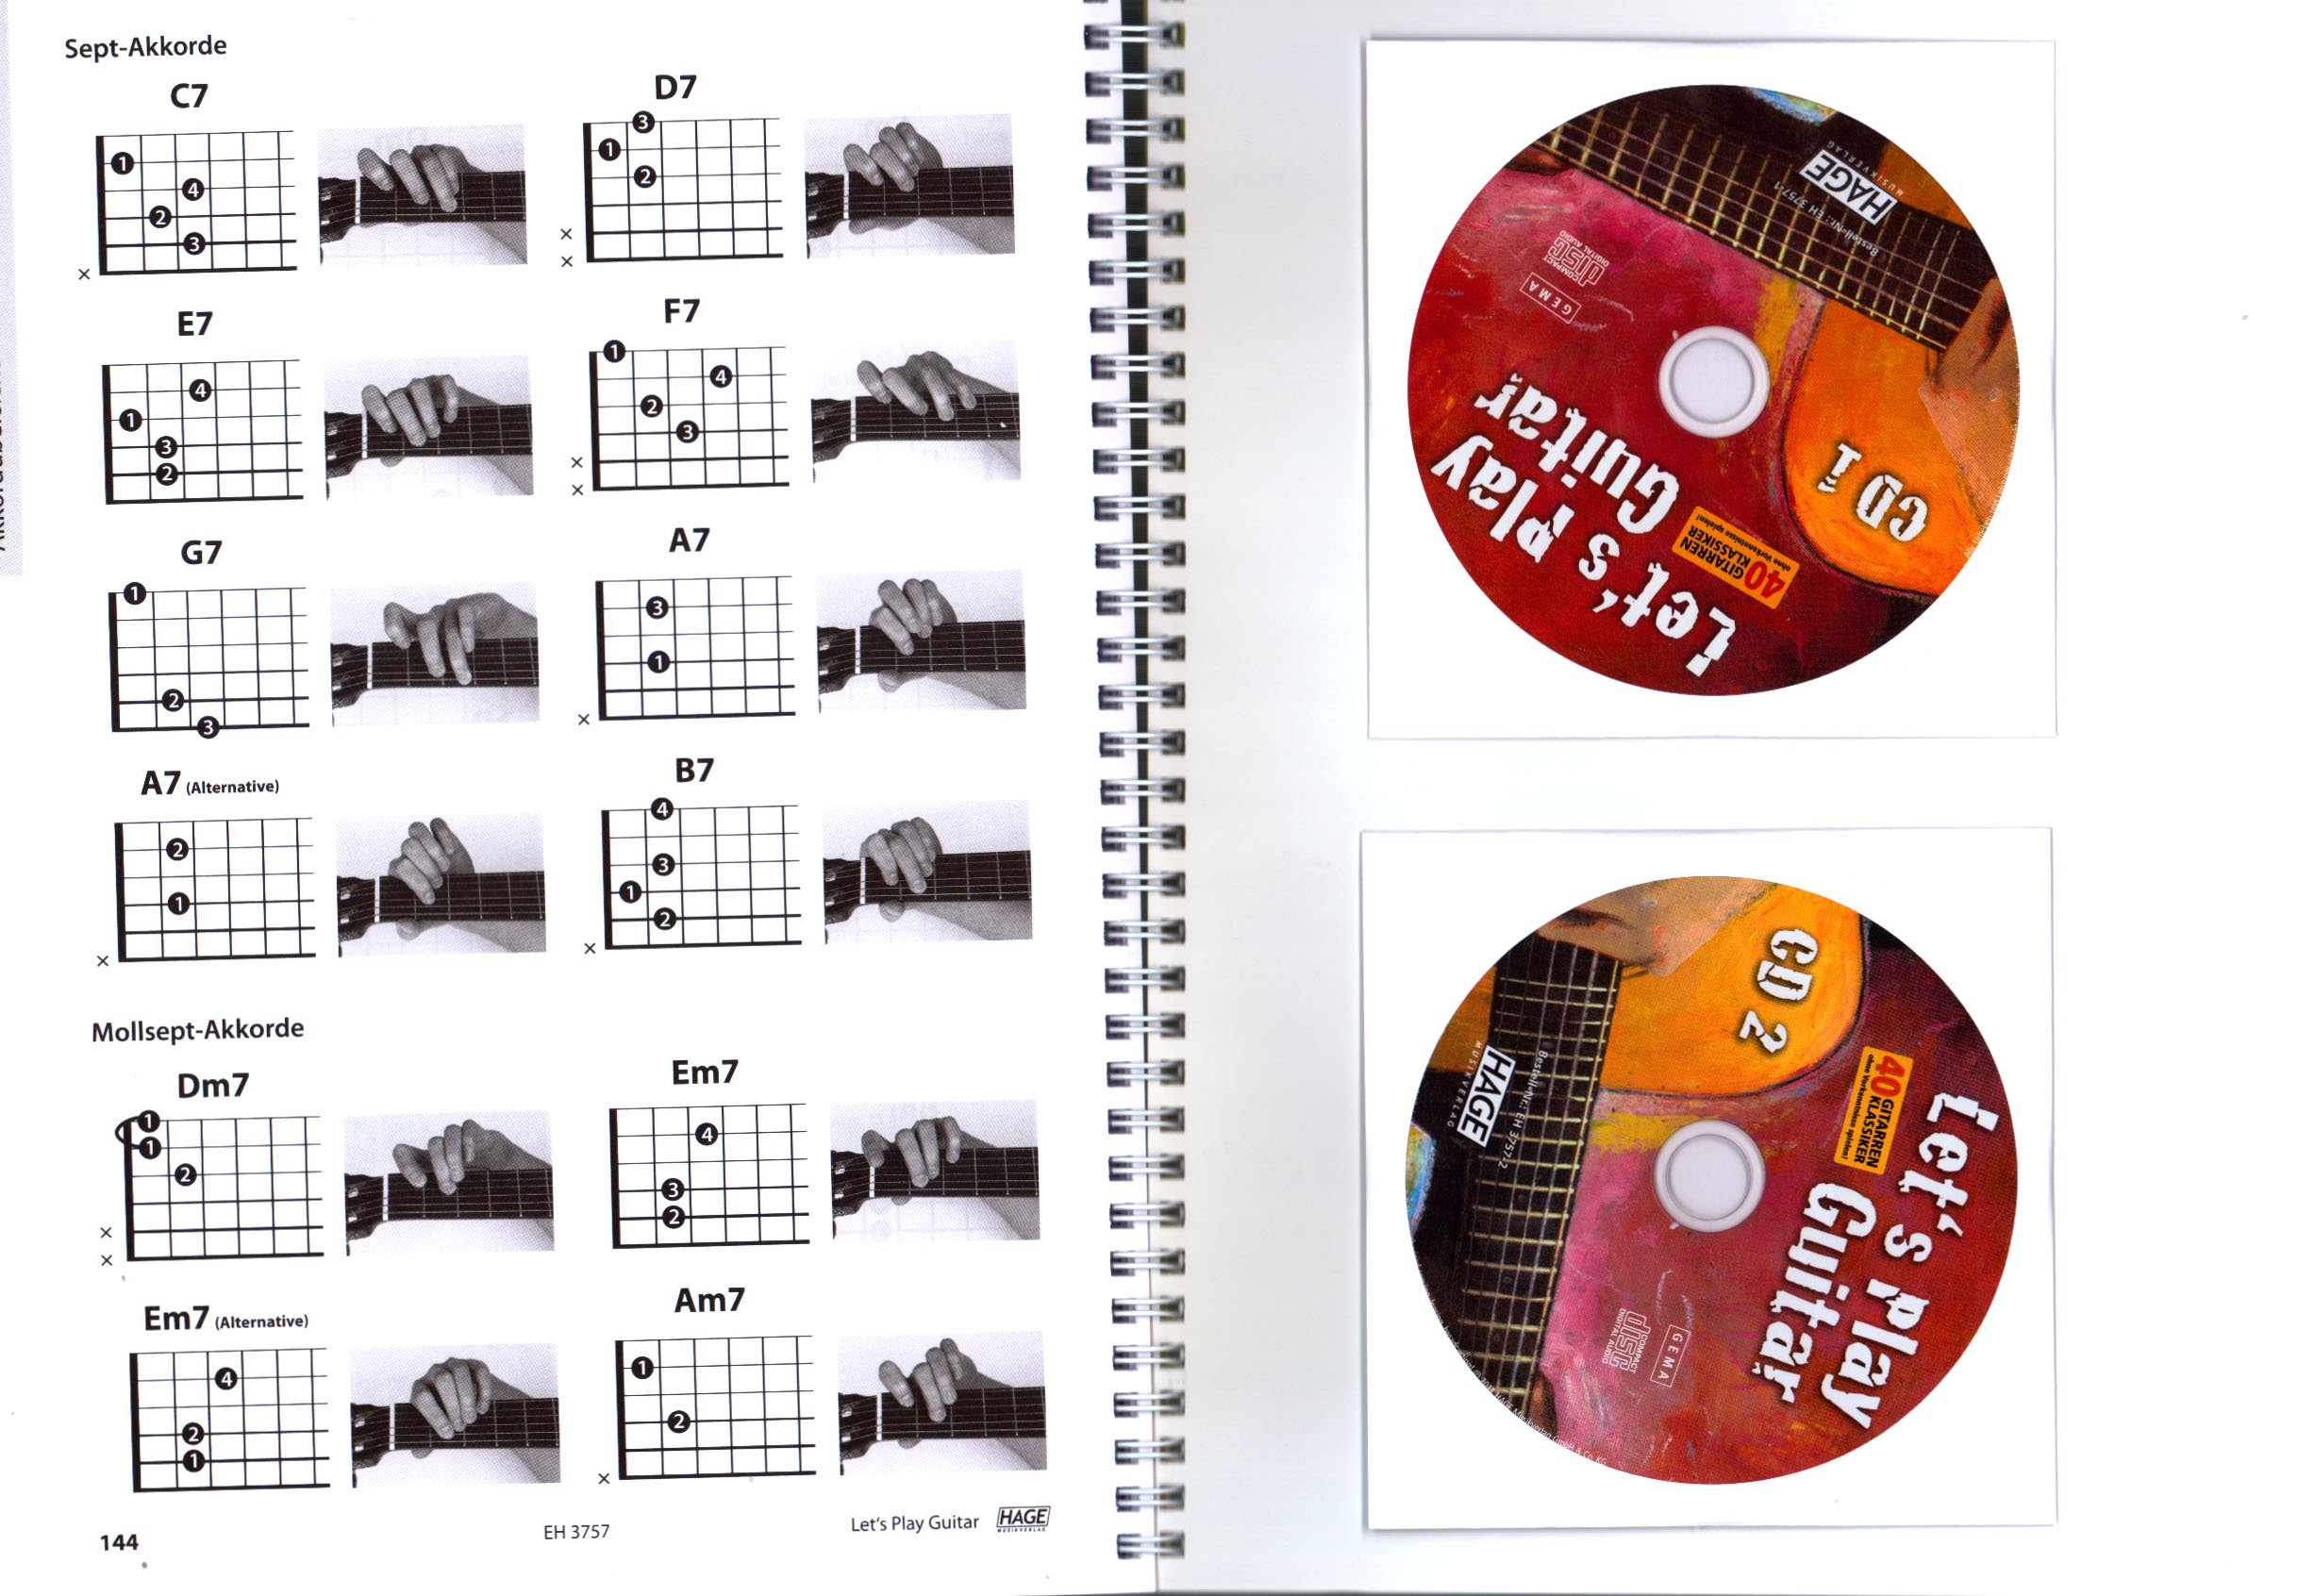 Let s Play Guitar banda 1 con 2 CD, DVD y Dunlop Púa – Songbook y ...